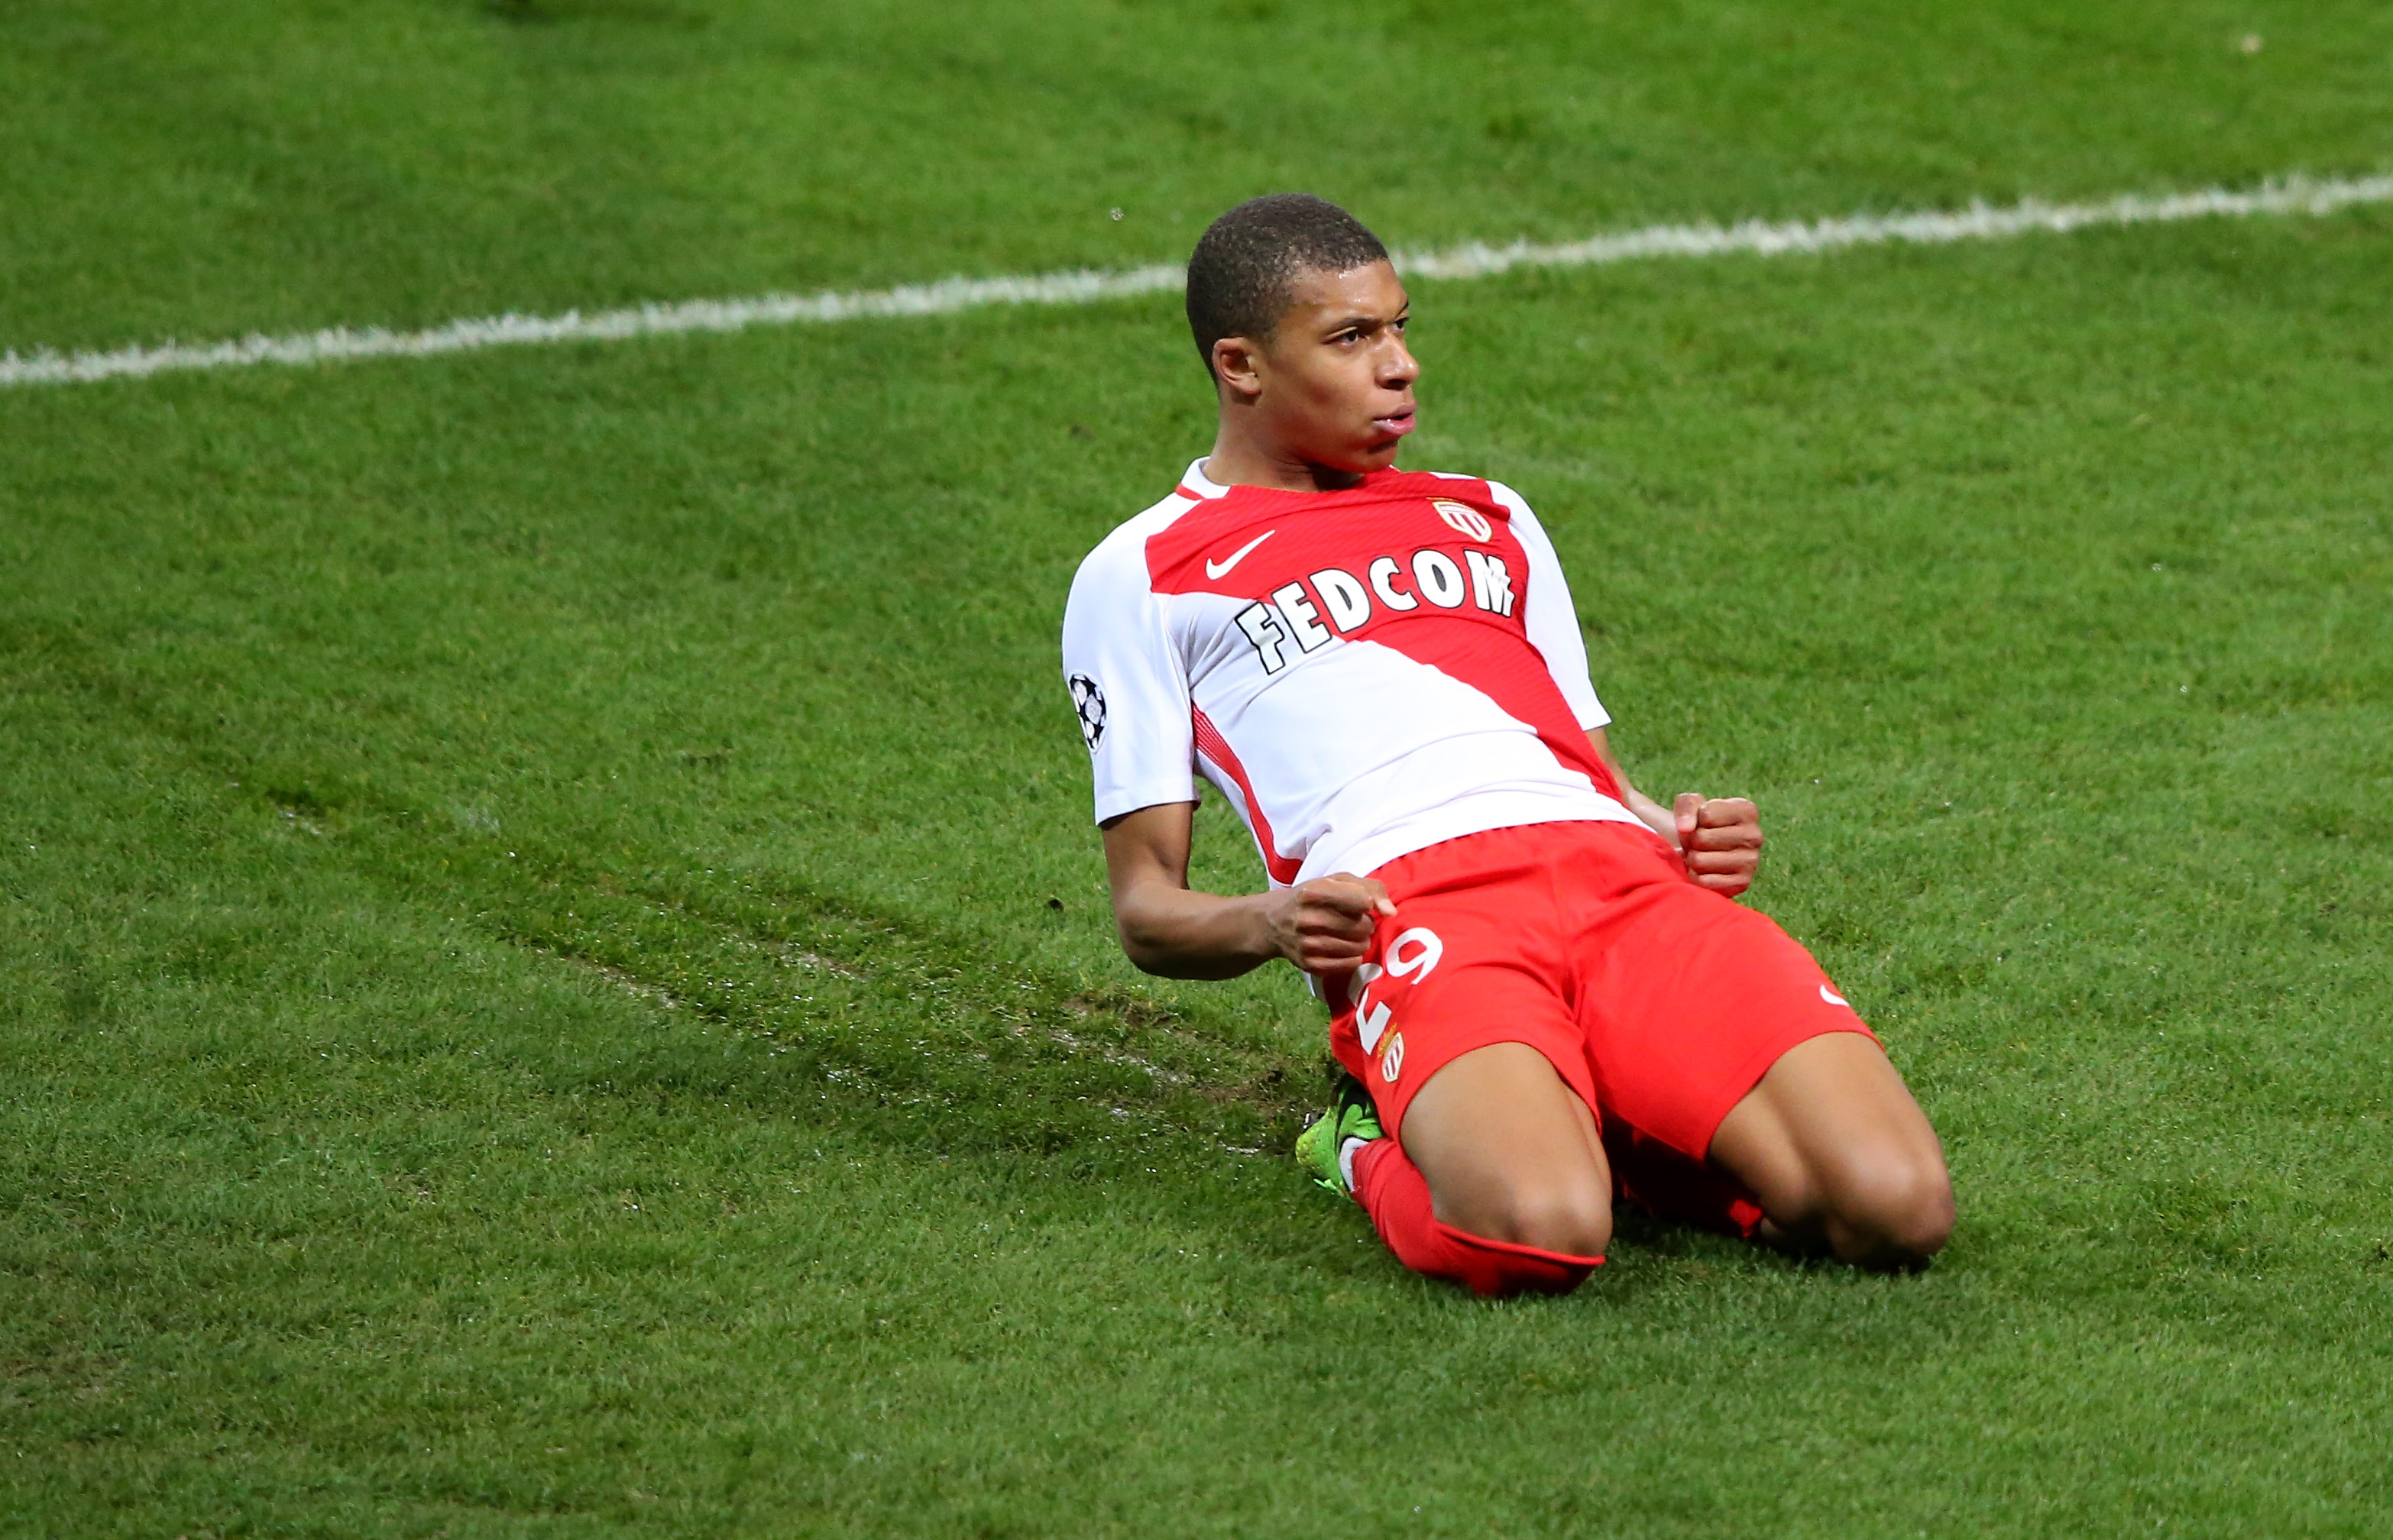 643502772-manchester-city-fc-v-as-monaco-uefa-champions-league-round-of-16-first-leg.jpg